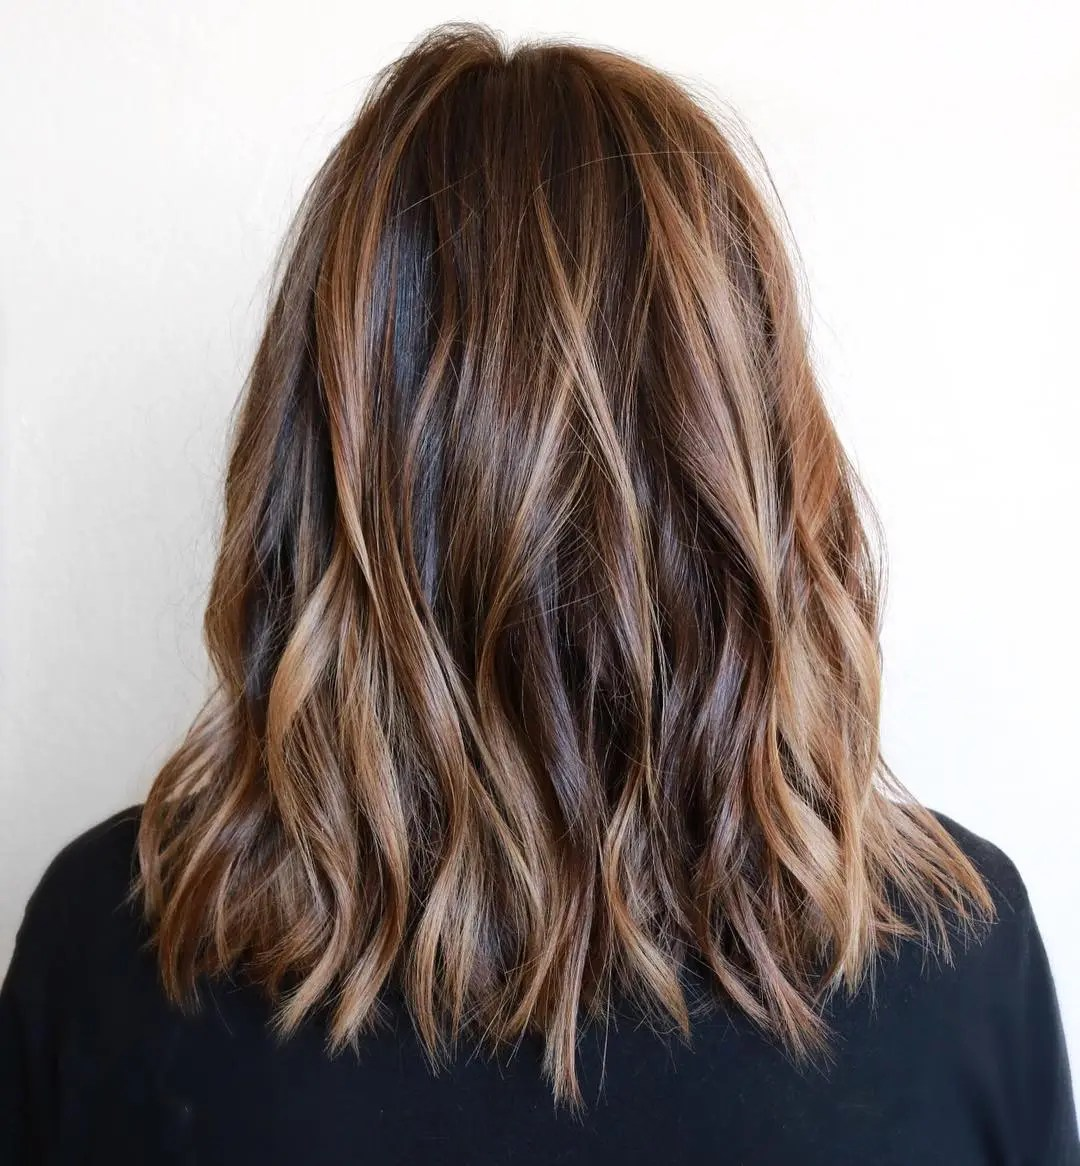 Honey Highlights and Dark Brown Locks